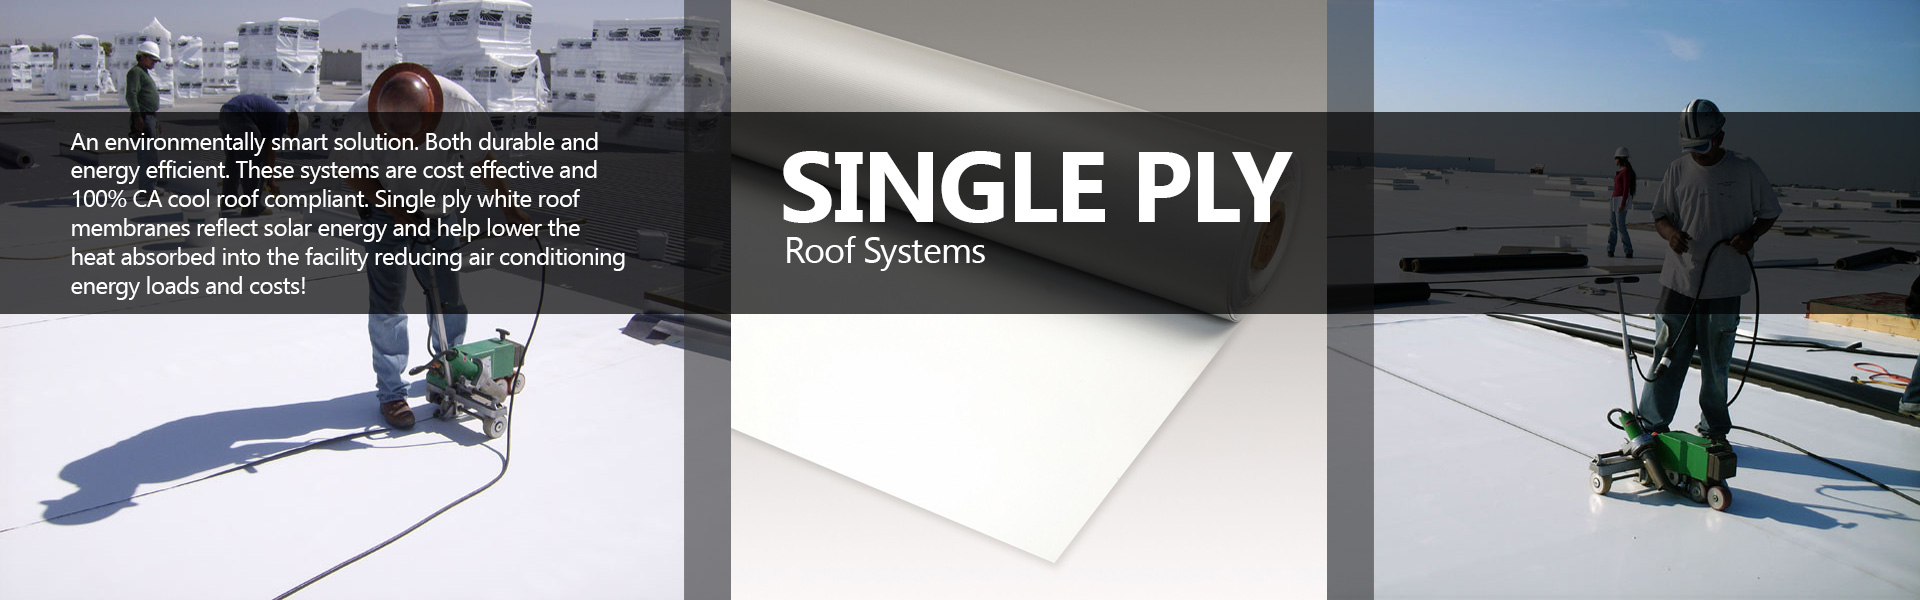 single-ply-roofing